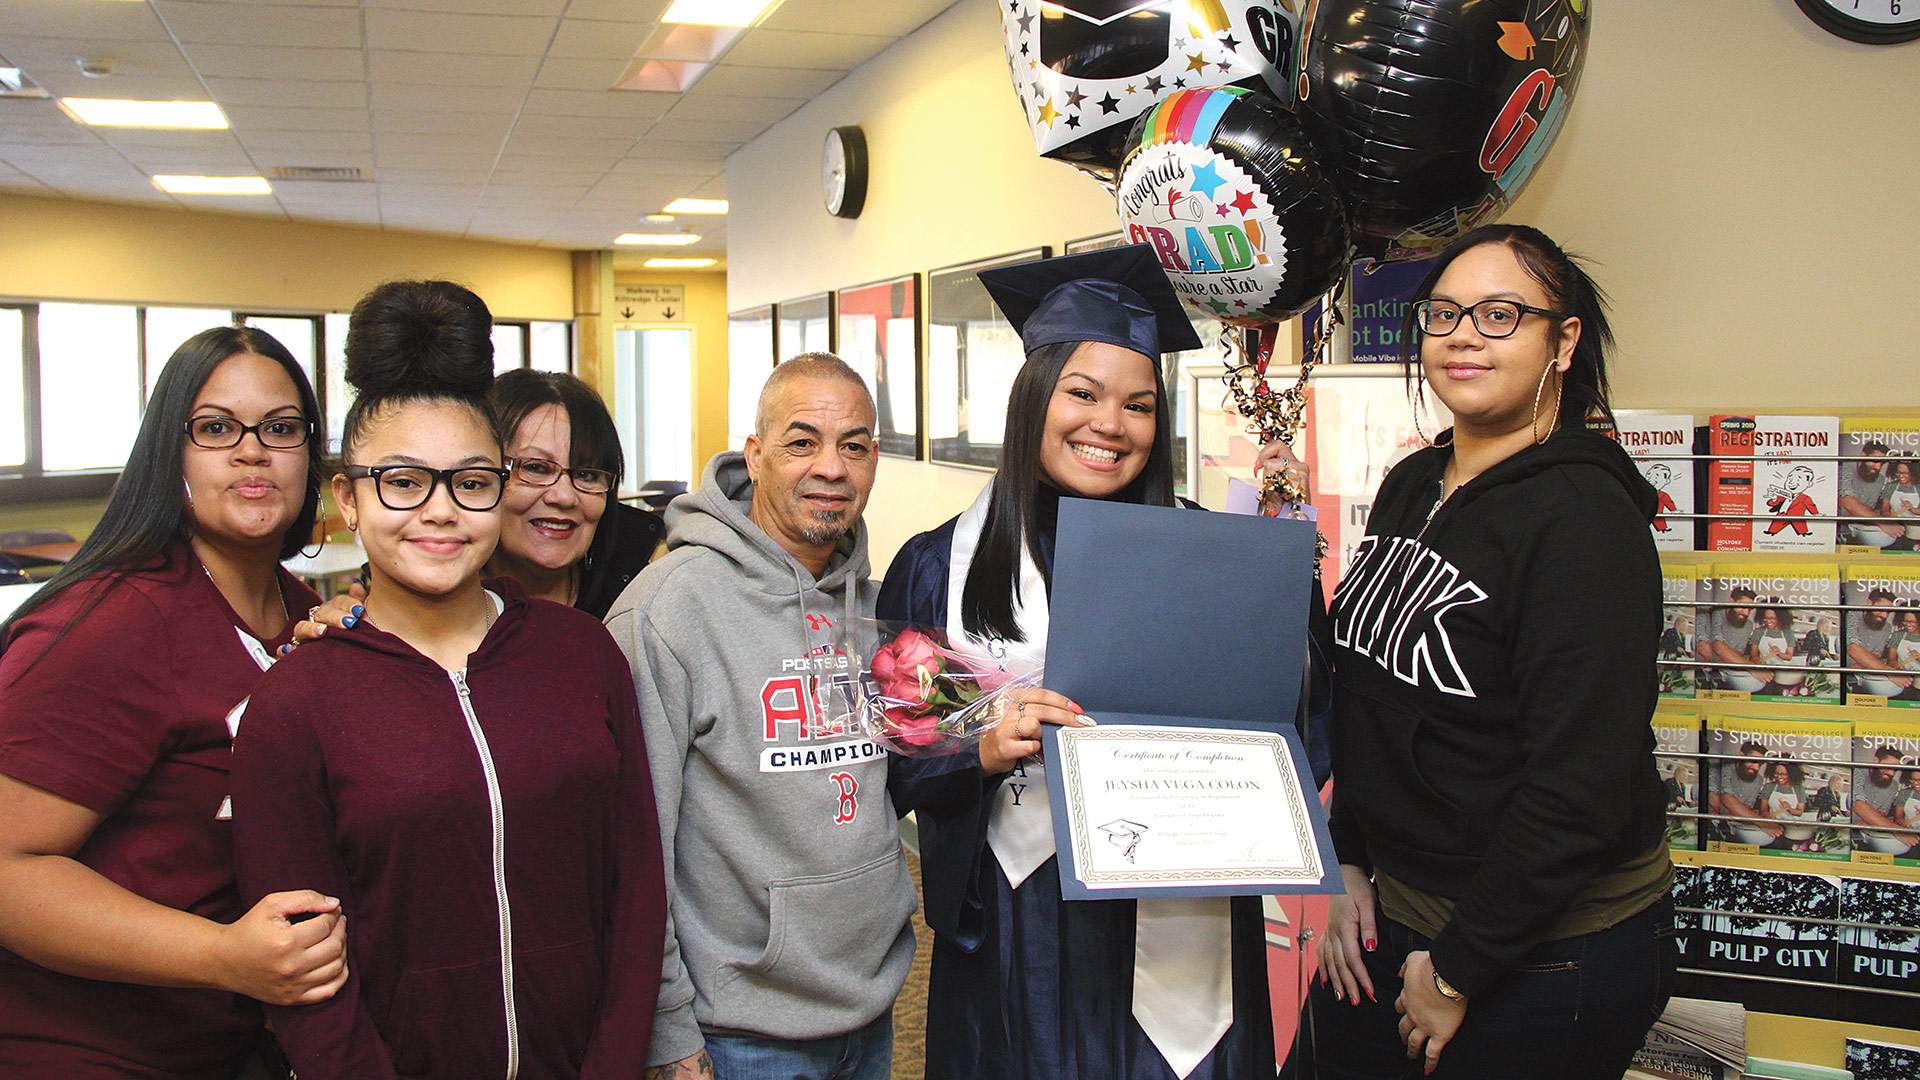 Jeysha Vega Colon of Springfield celebrates with her family